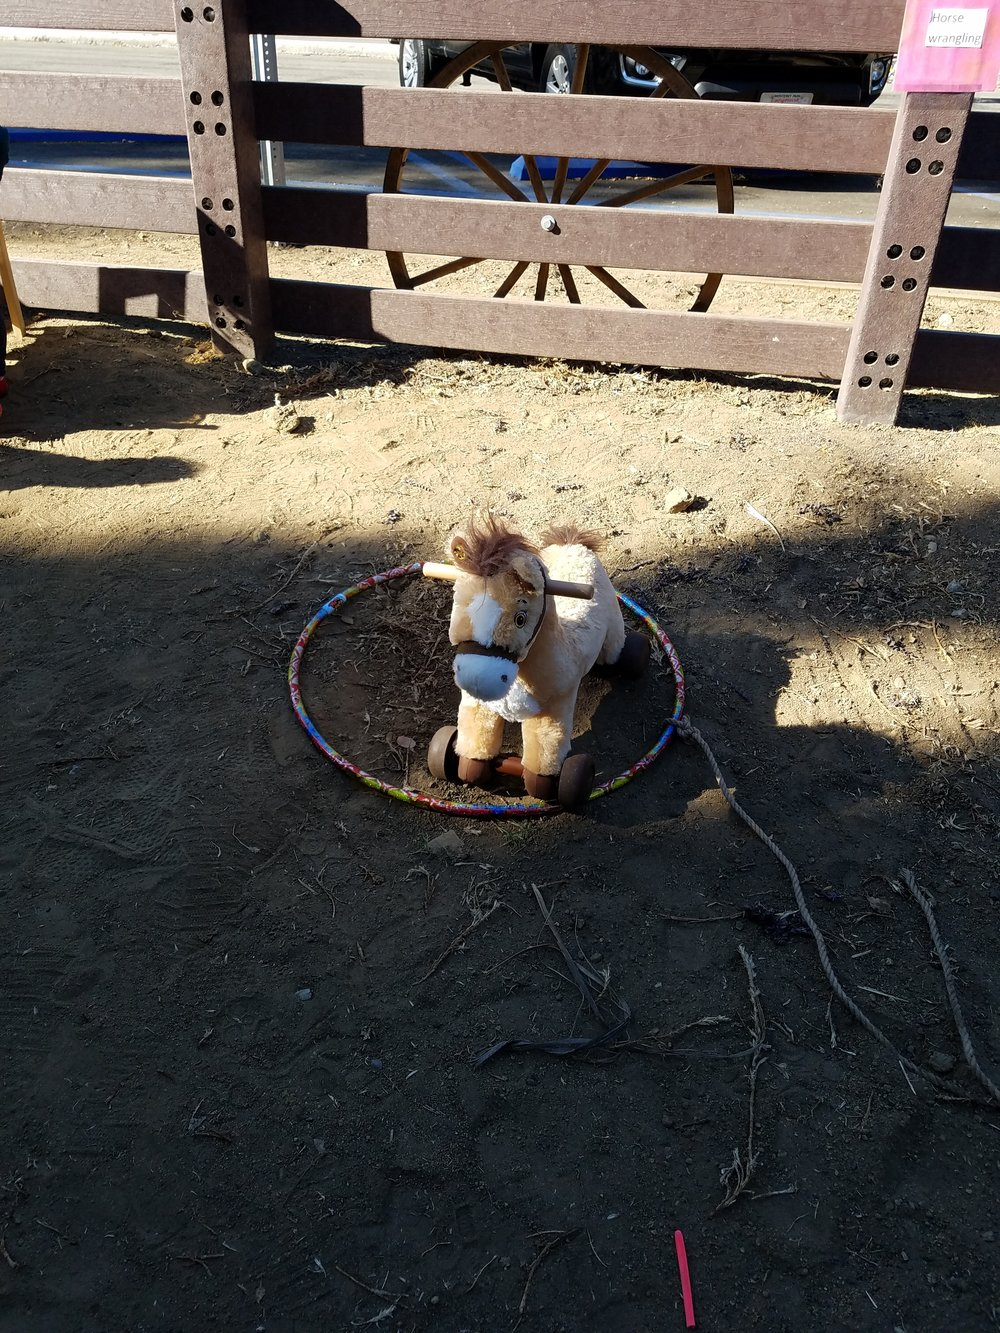 Wrangle a horse. Rope tied around a oola hoop and our small play horse.